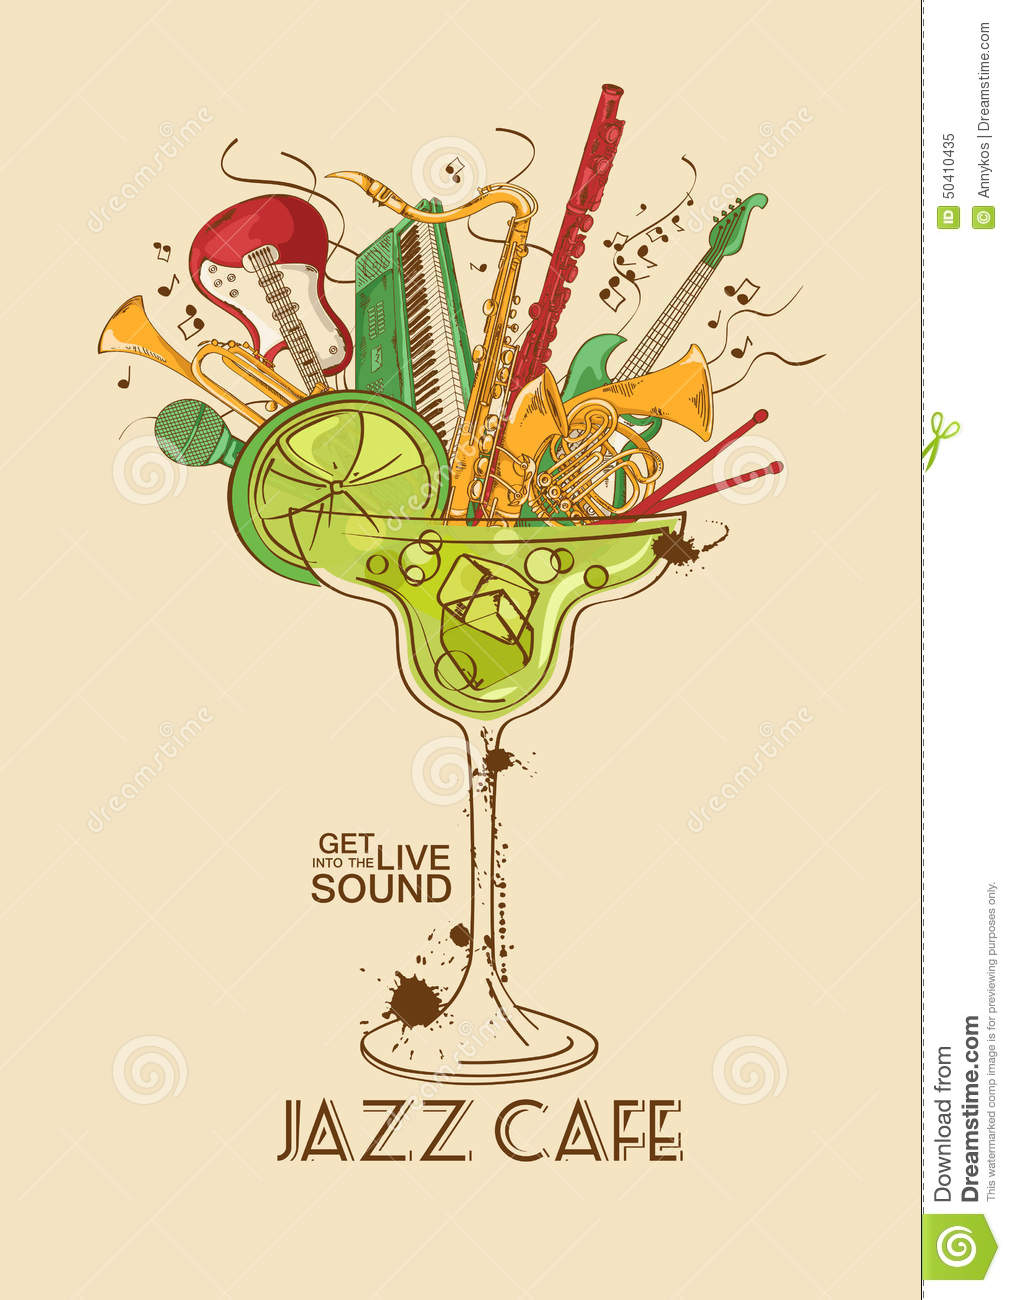 Jazz Cafe Concept With Musical Instruments In A Cocktail ...